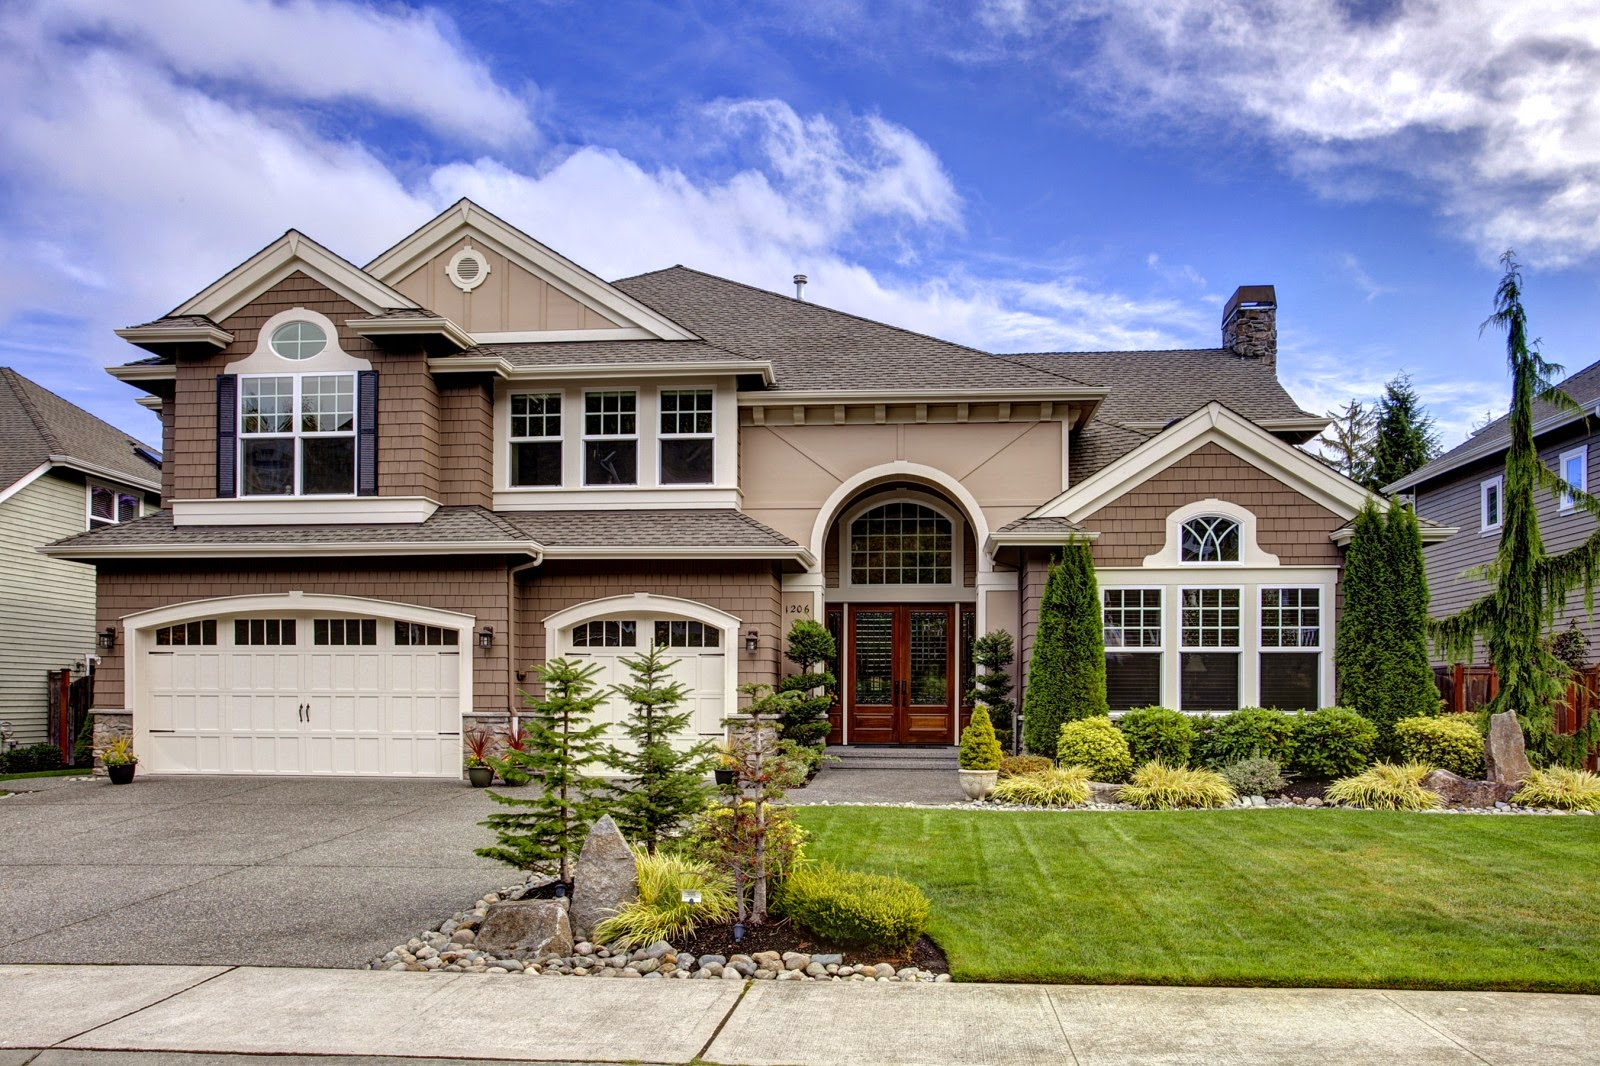 Daily real estate buzz low down payments make a comback for Luxury home exteriors